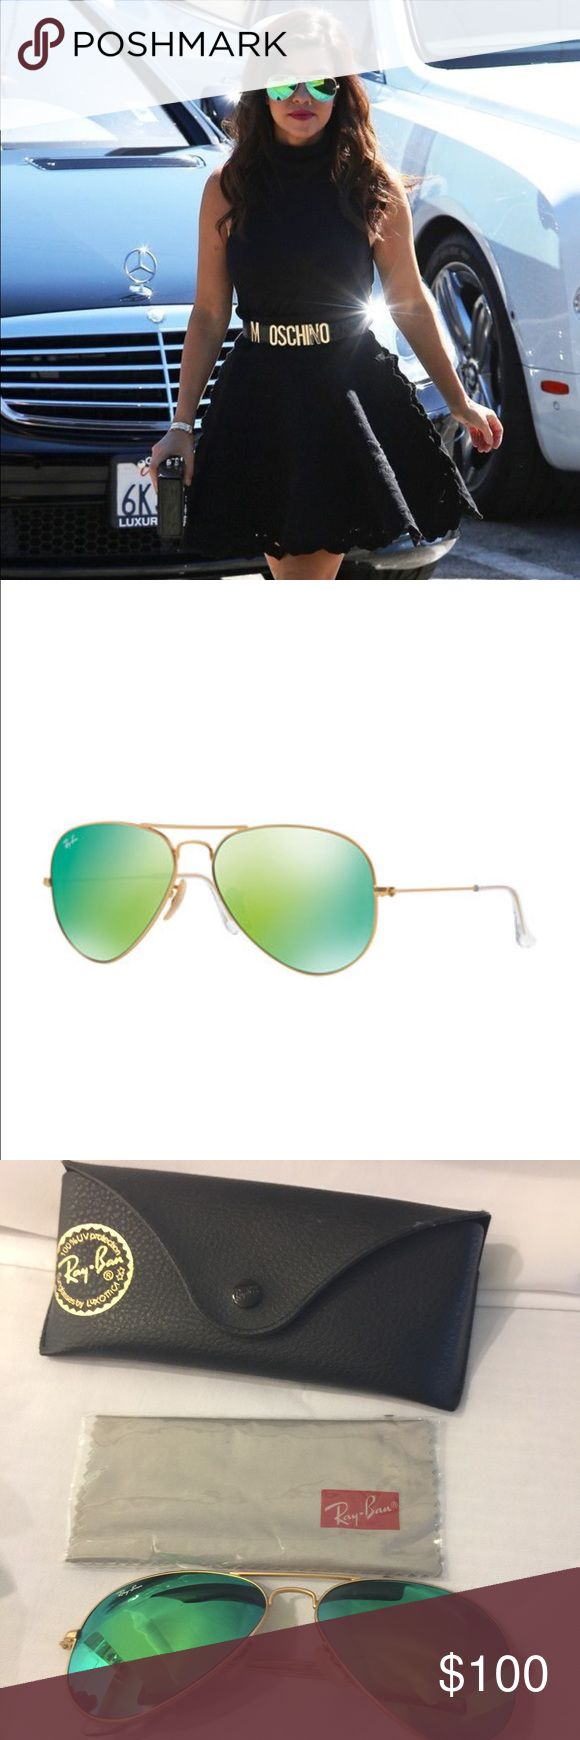 Authentic Ray ban Aviator metal mirror sunglasses Listing is for a authentic pair of green mirrored metal Aviator sunglasses made by Ray-Ban. Glasses authentic! Comes with original case and cleaning cloth. Like new condition. No trades💙price firm💙 Ray-Ban Accessories Sunglasses